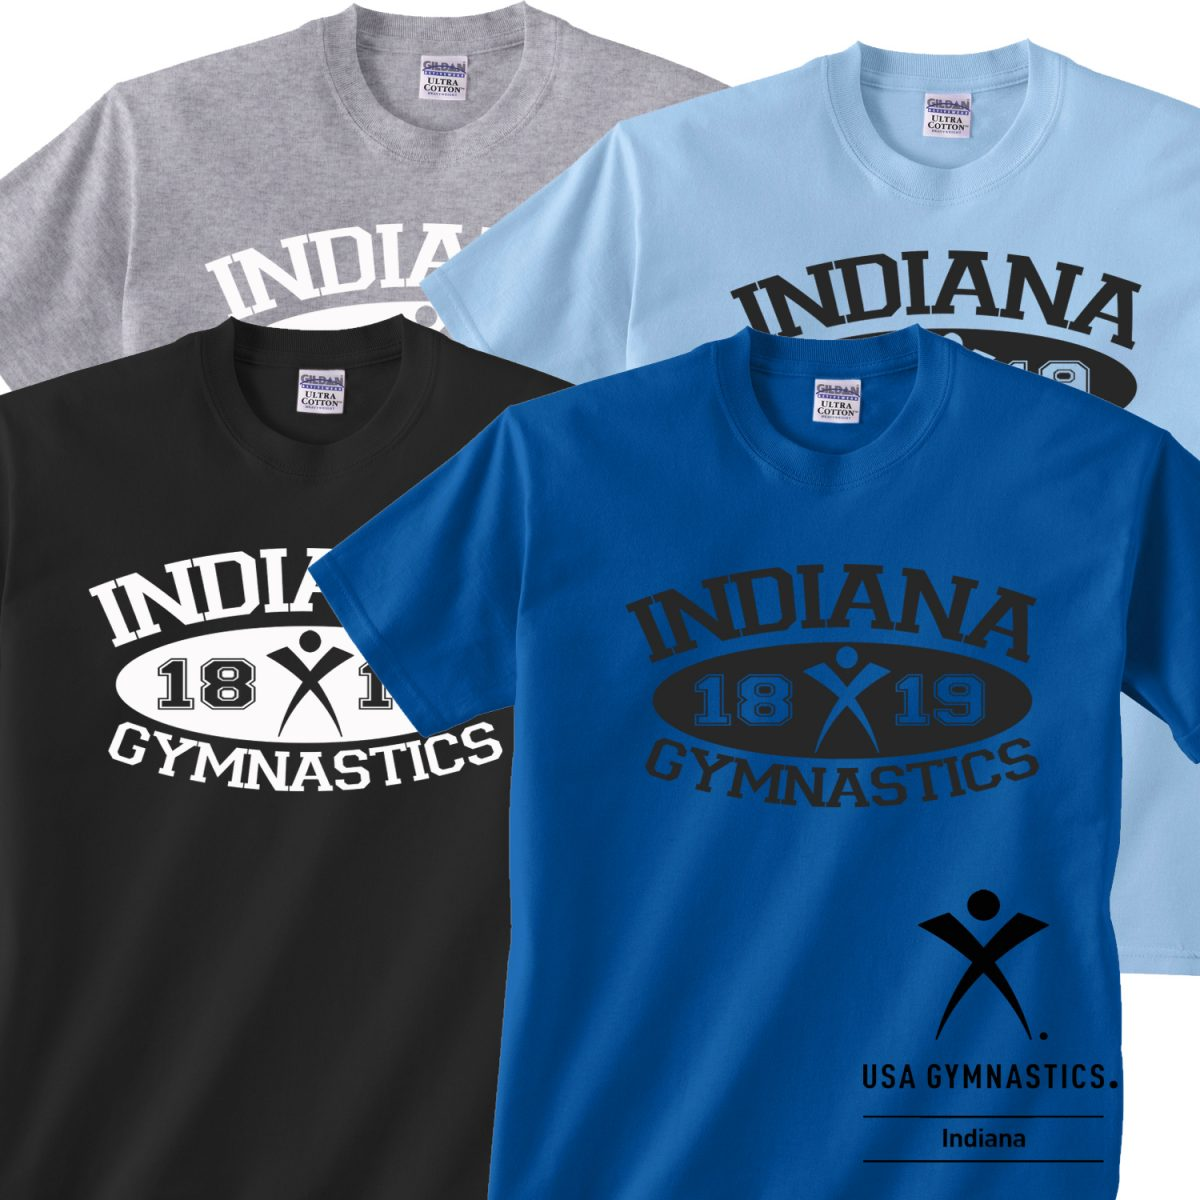 Indiana USA Gymnastics Athletic Tee